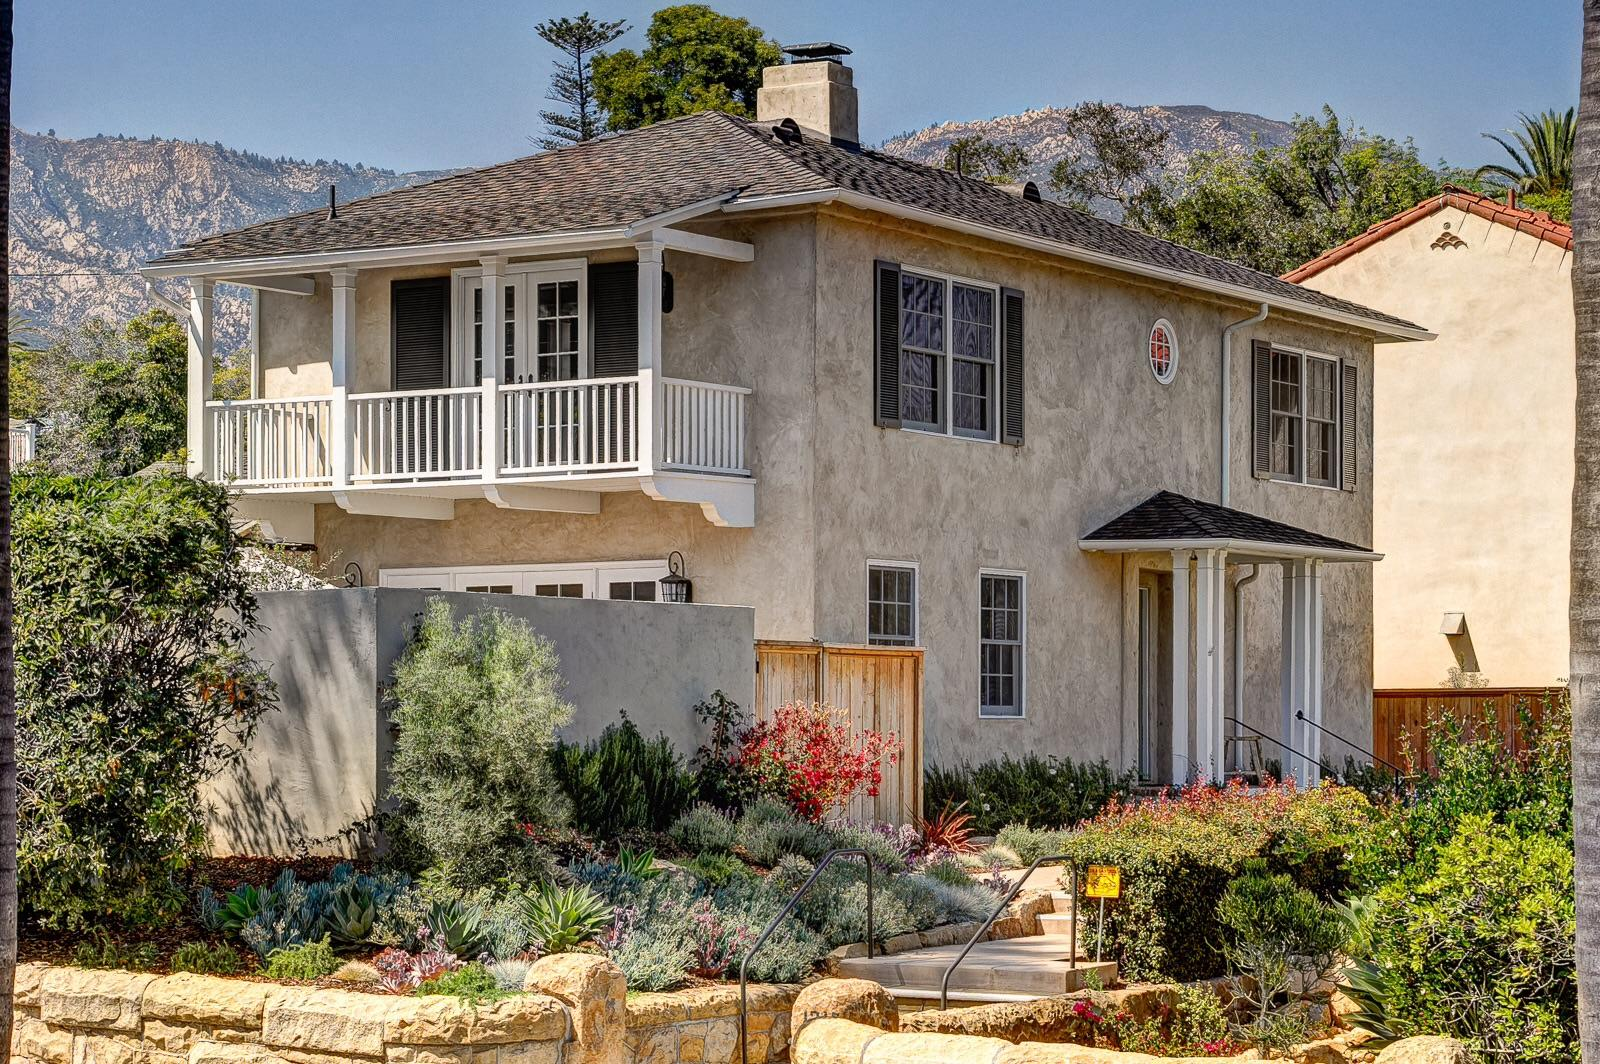 Property photo for 1712 Anacapa St Santa Barbara, California 93101 - 15-2123